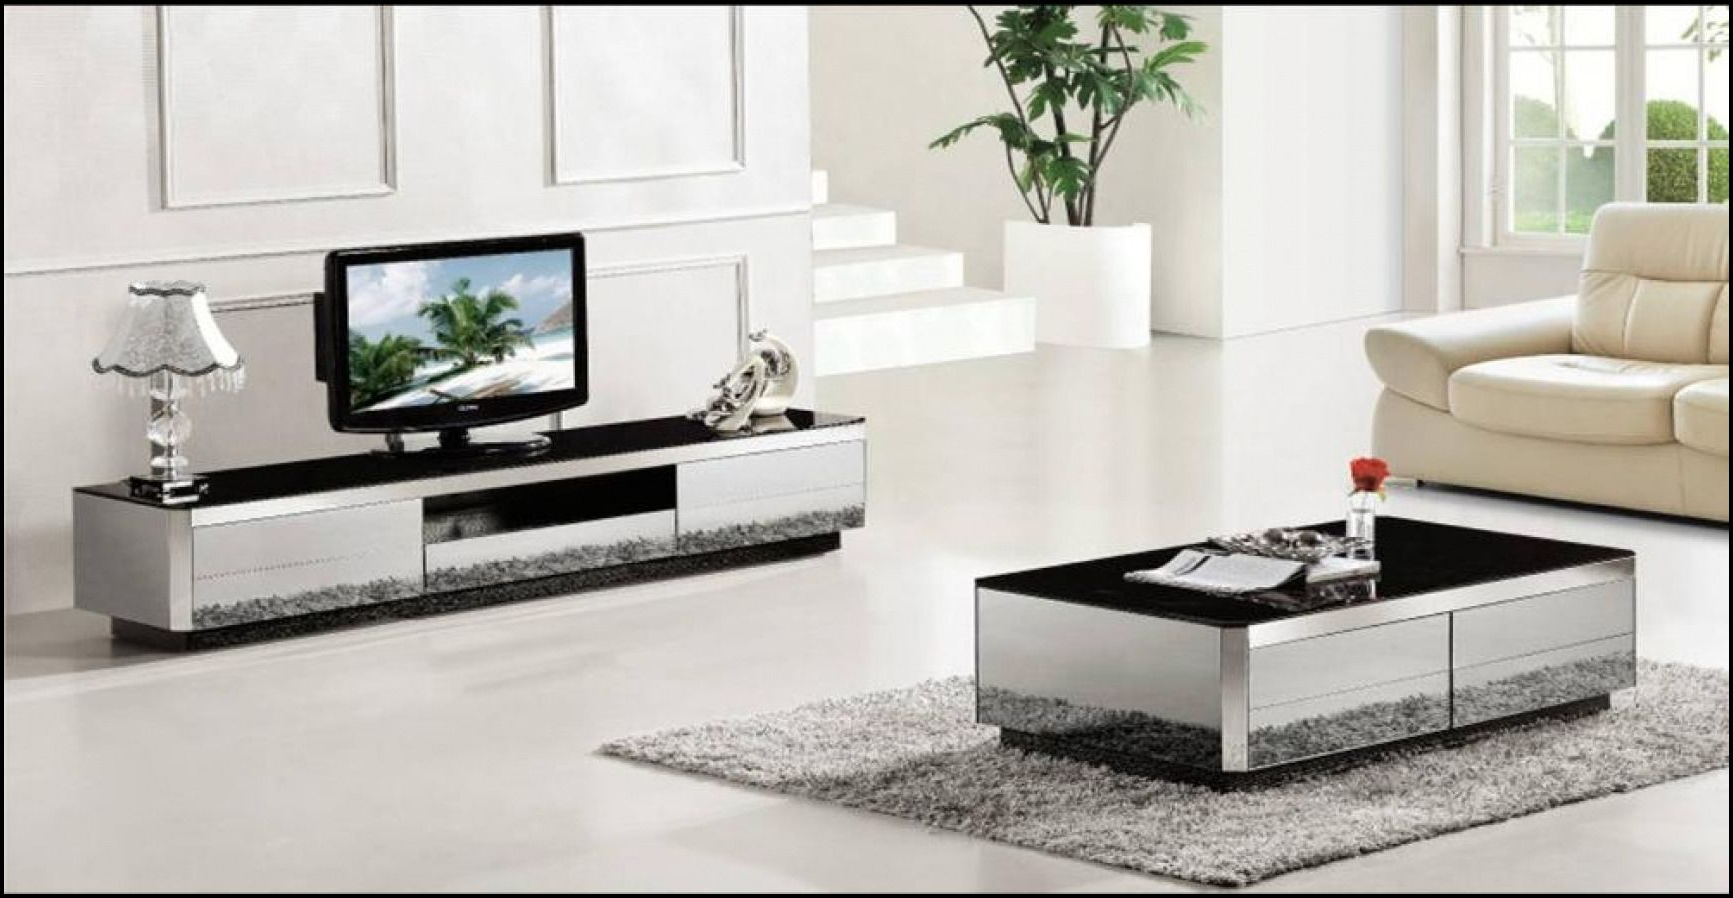 Tv Stand And Side Table Set : Pravacreativestudios Pertaining To 2018 Tv Cabinet And Coffee Table Sets (View 7 of 20)